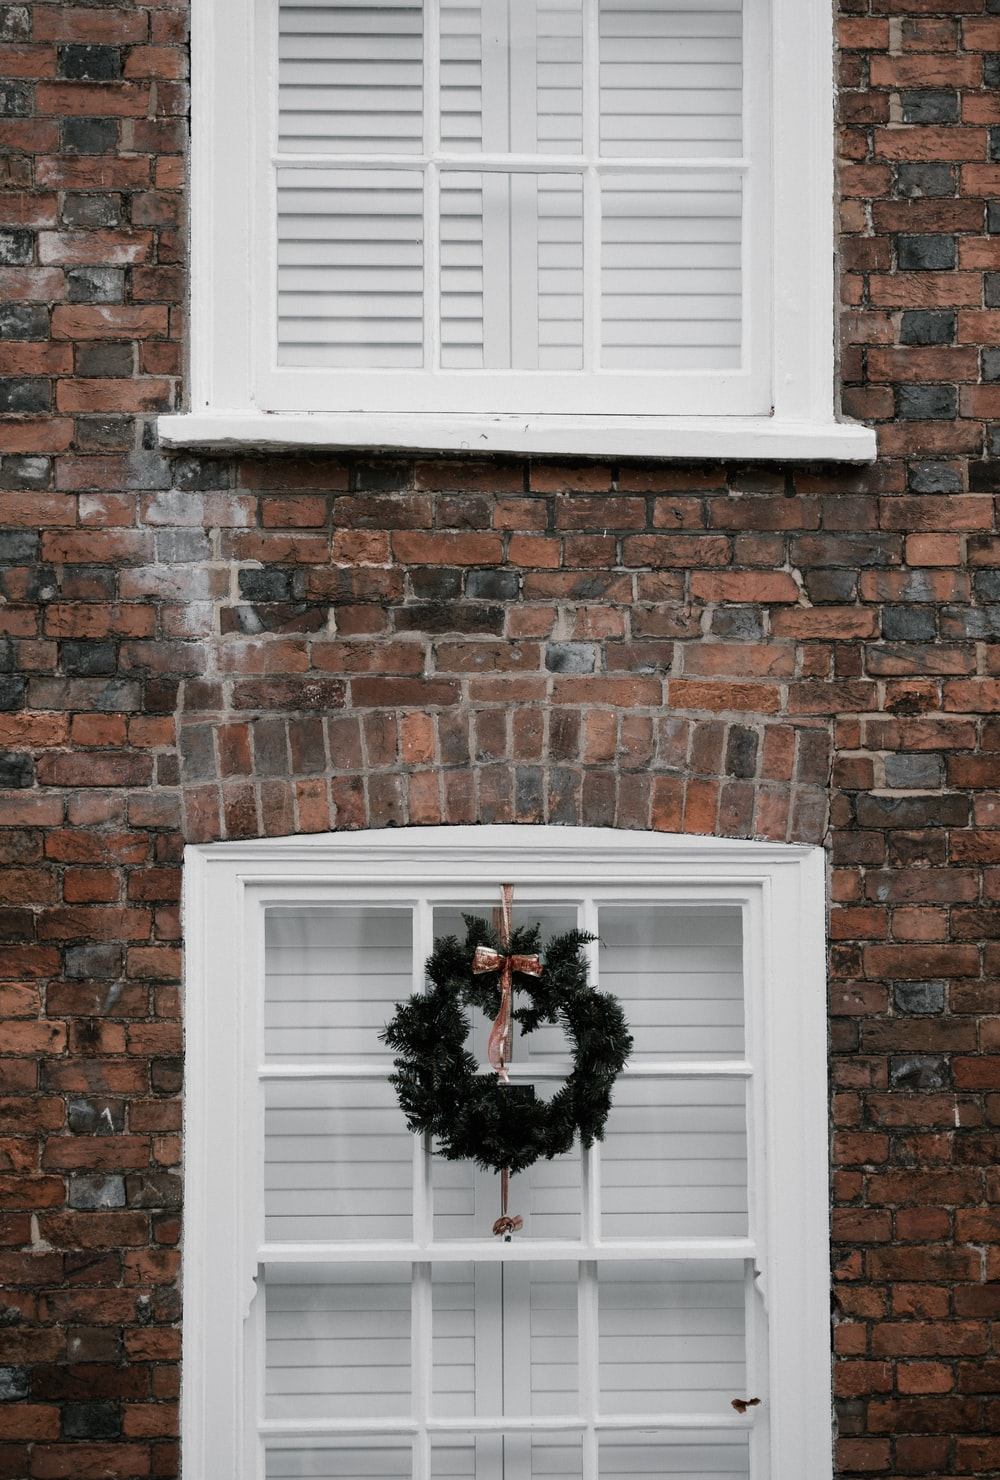 green wreath hanging on white window